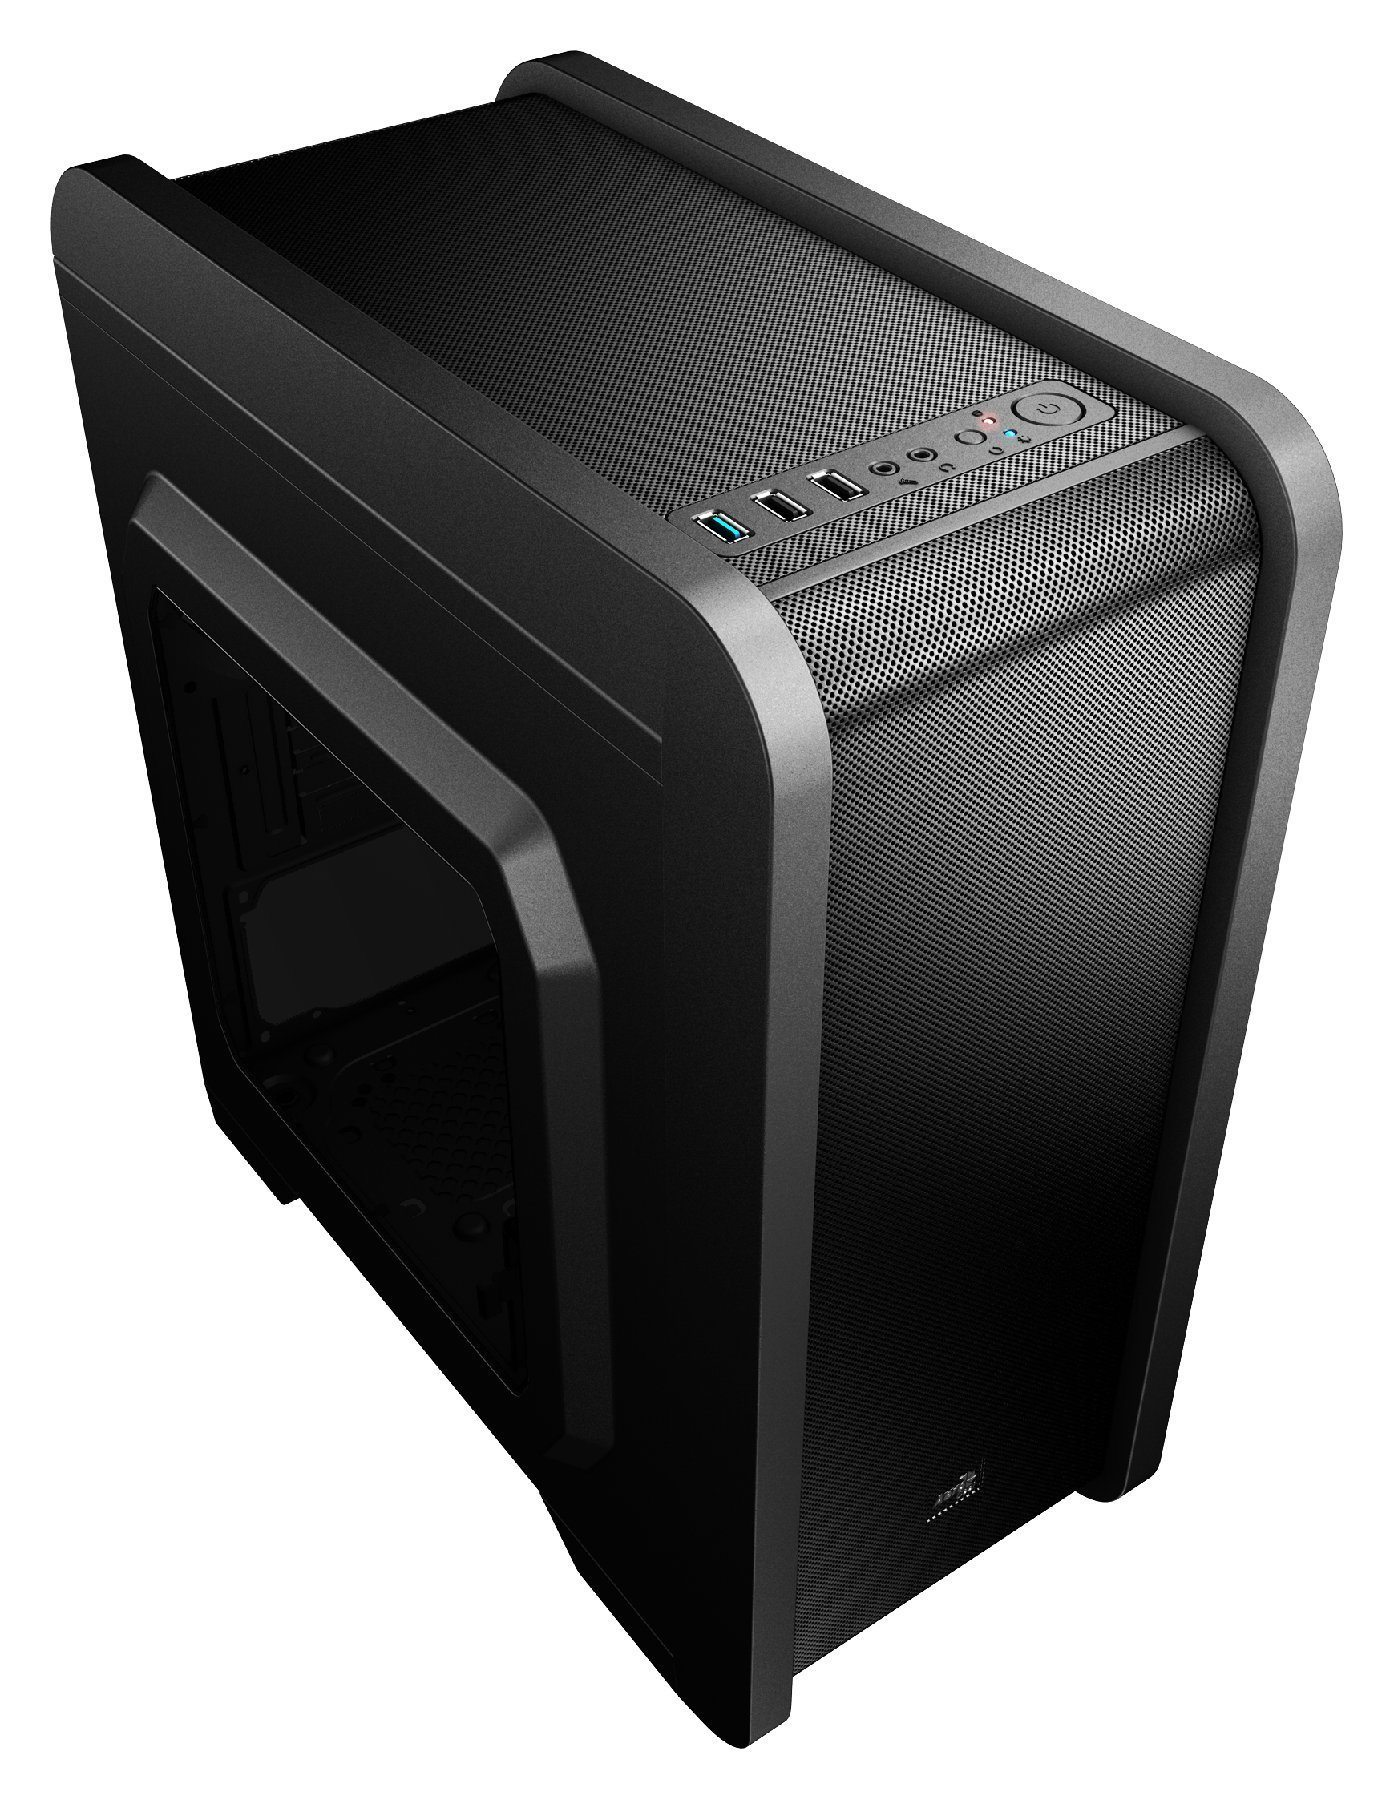 кутия Case mATX - QS-240 Window - ACCS-PQ04014.11